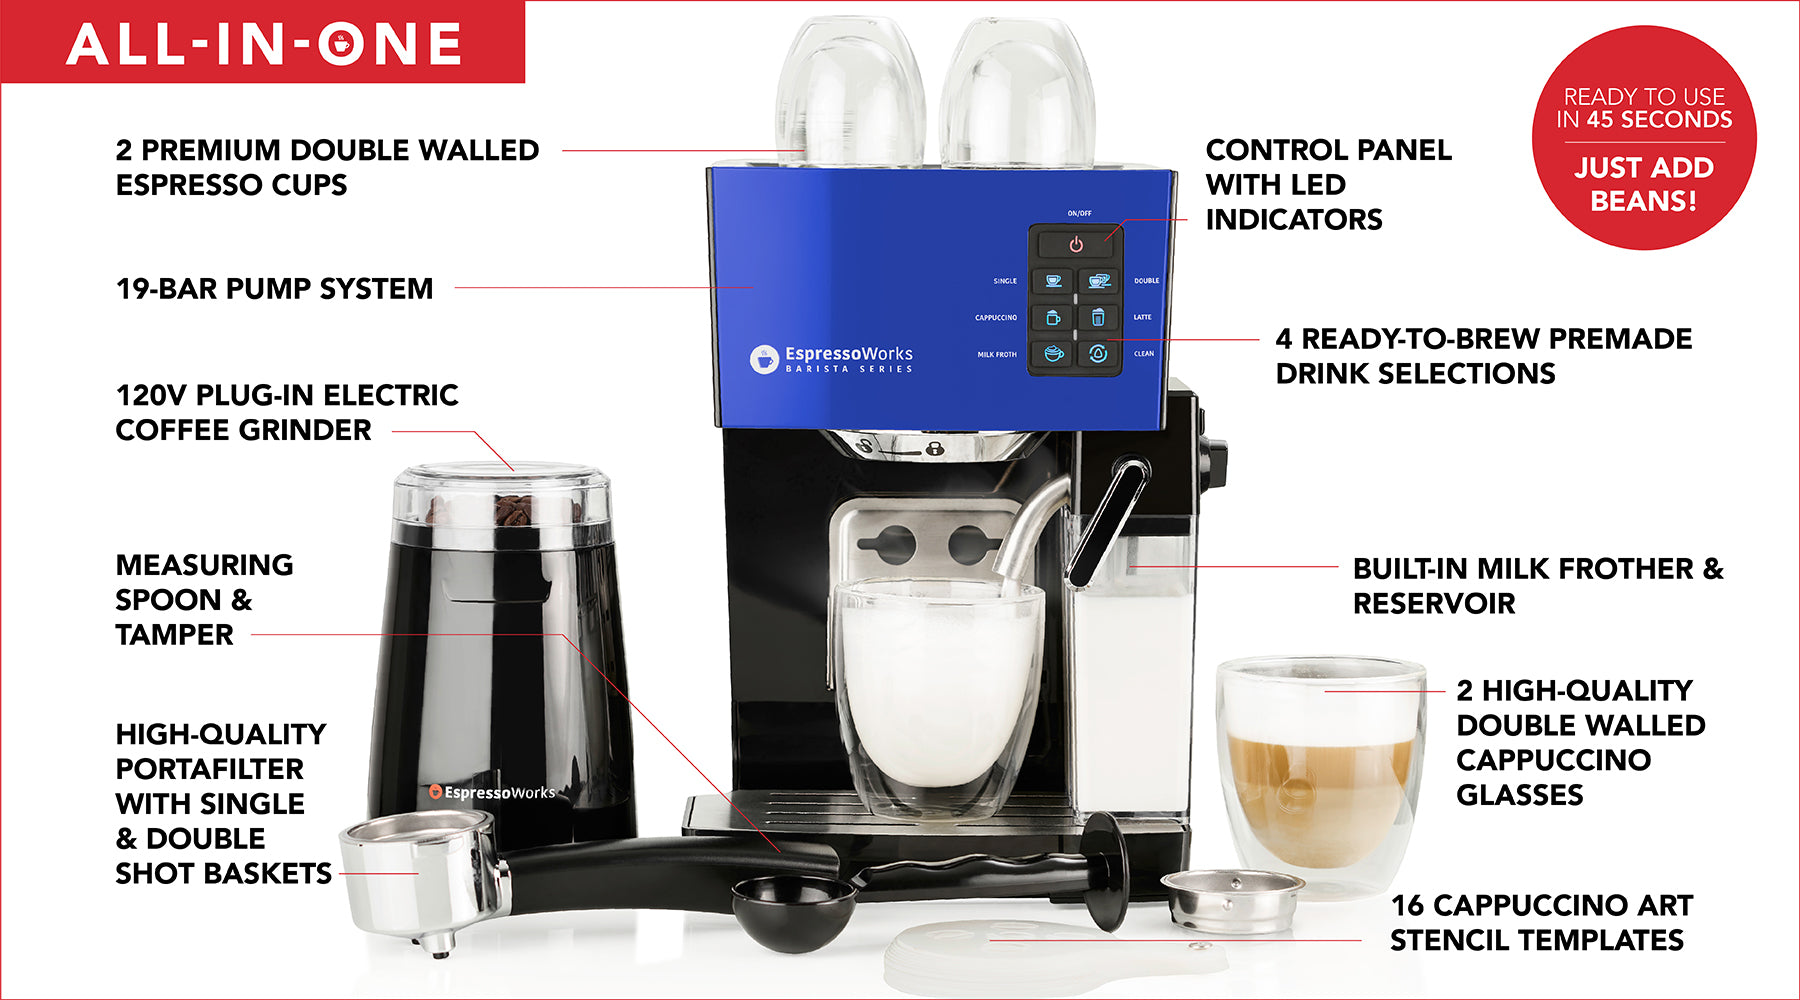 Everything included when you purchase the EspressoWorks 19-bar Espresso & Cappuccino Machine